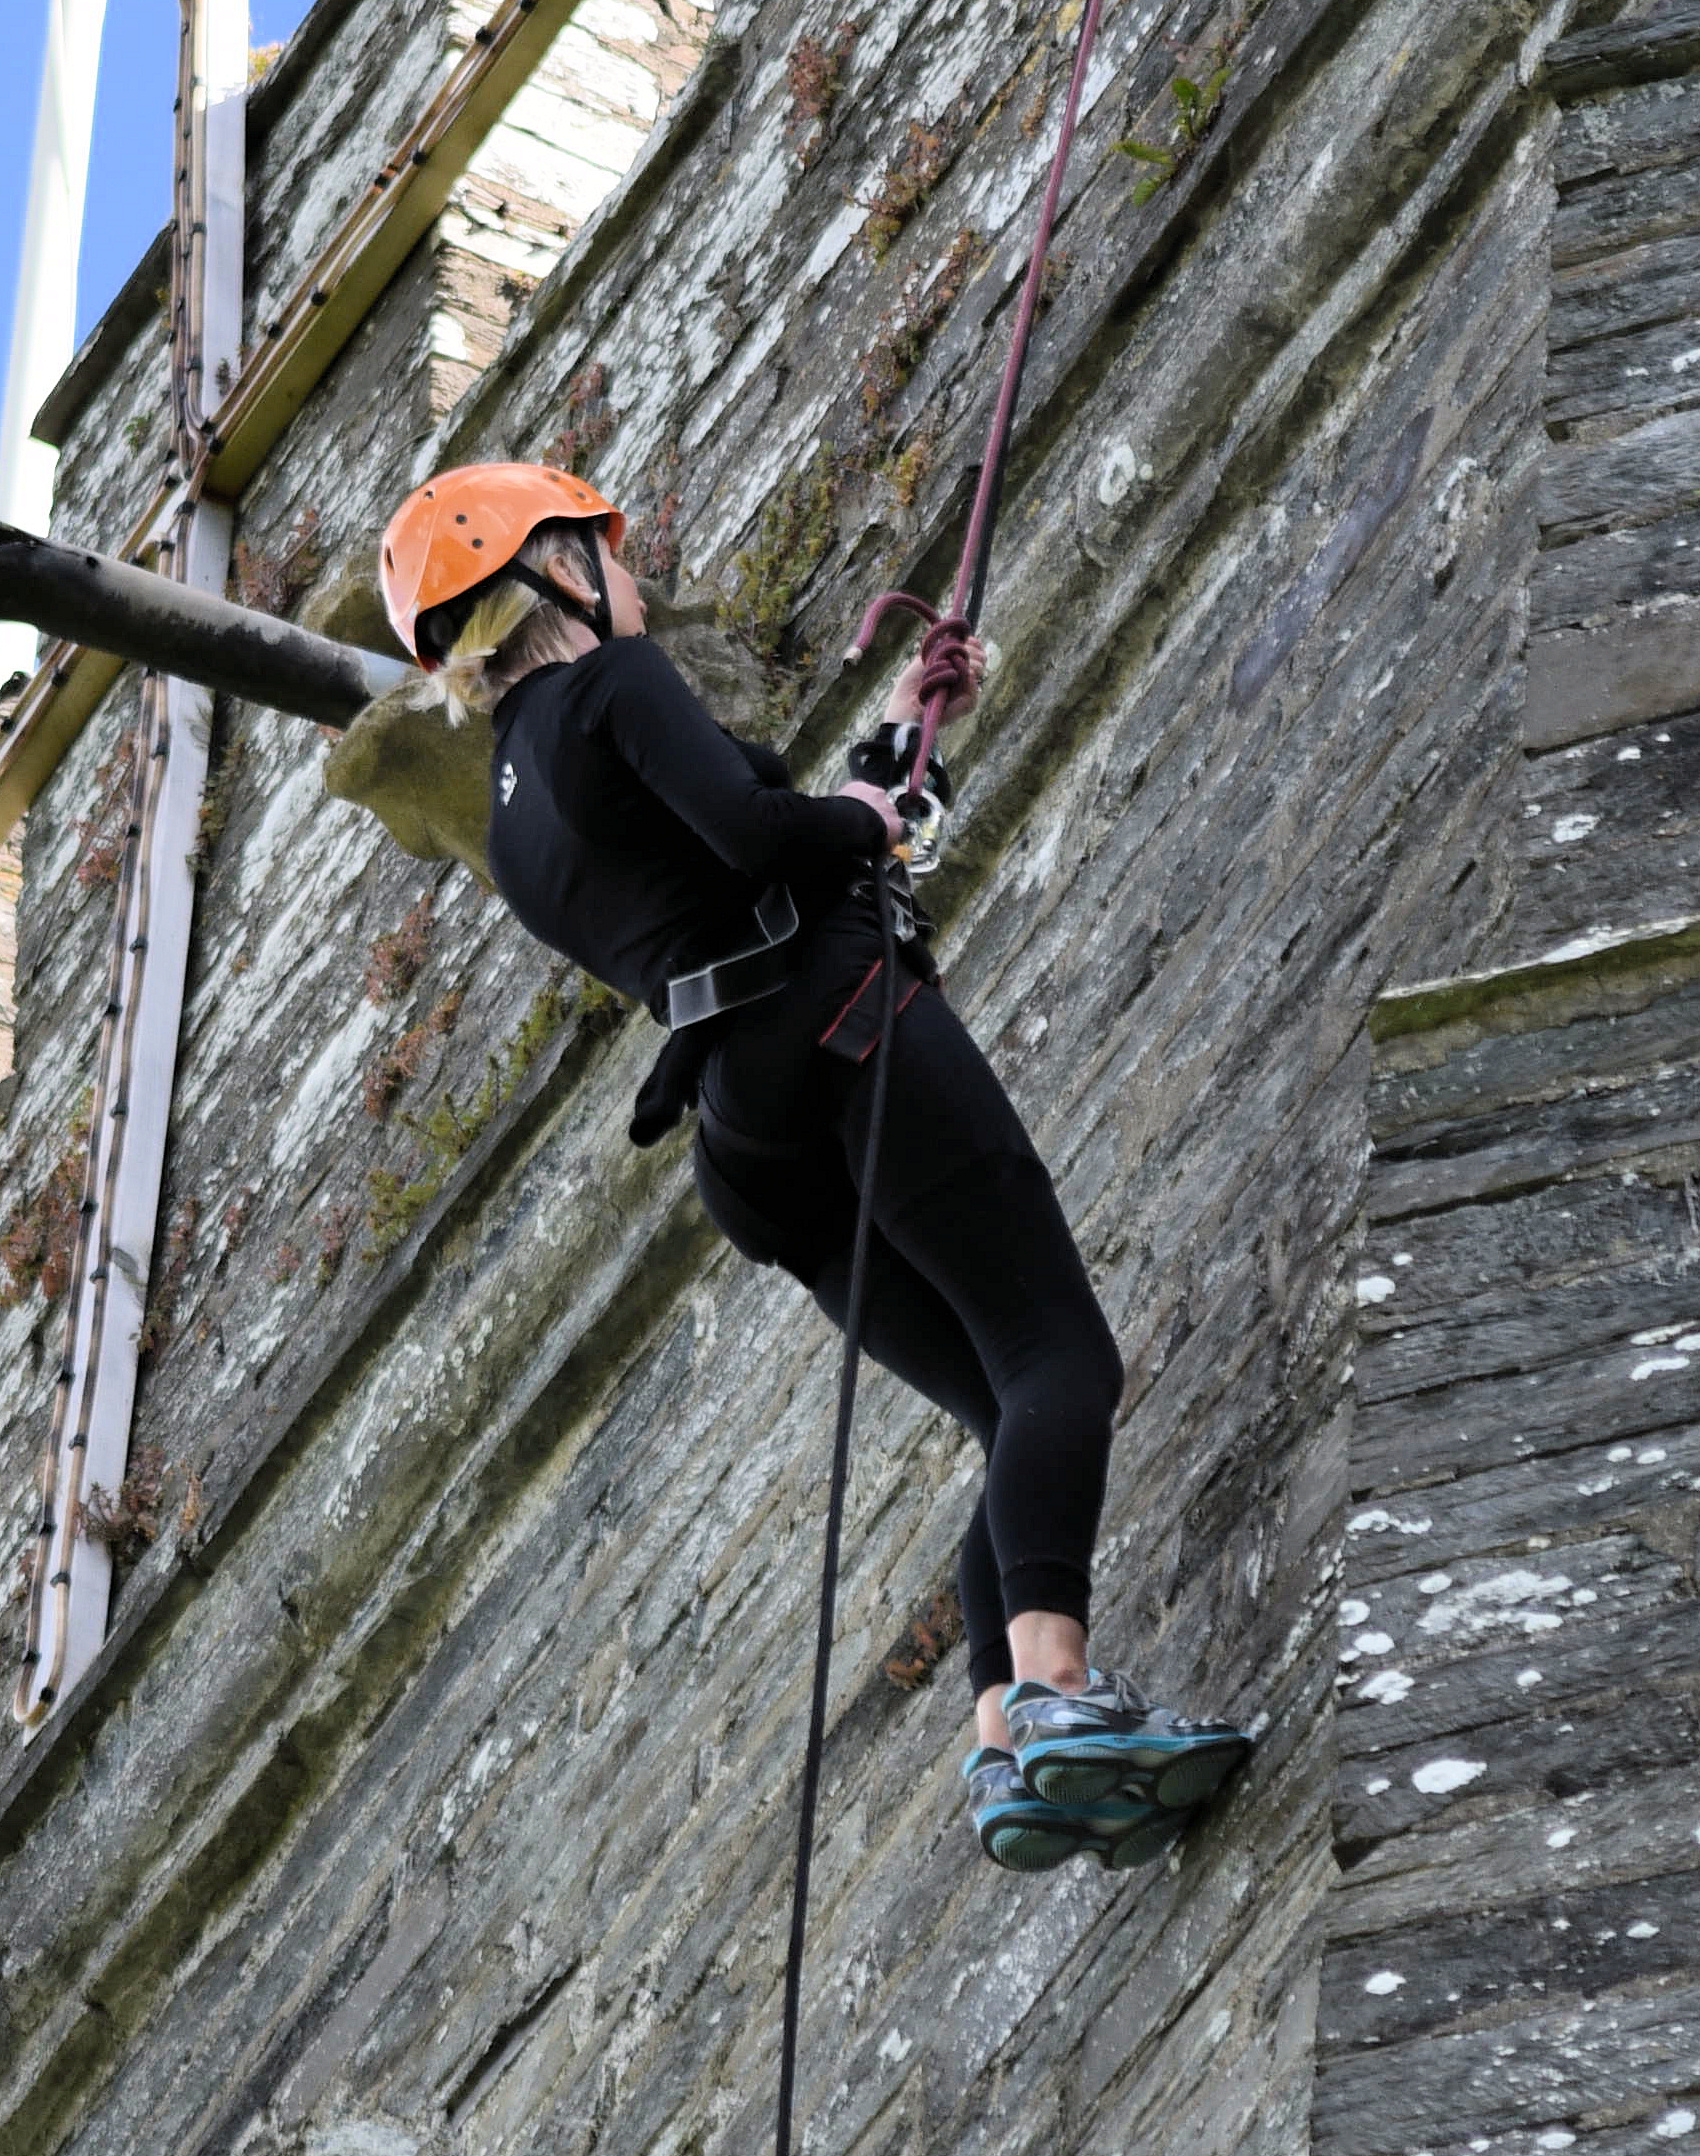 Abseiling down the walls of Cardigan castle.